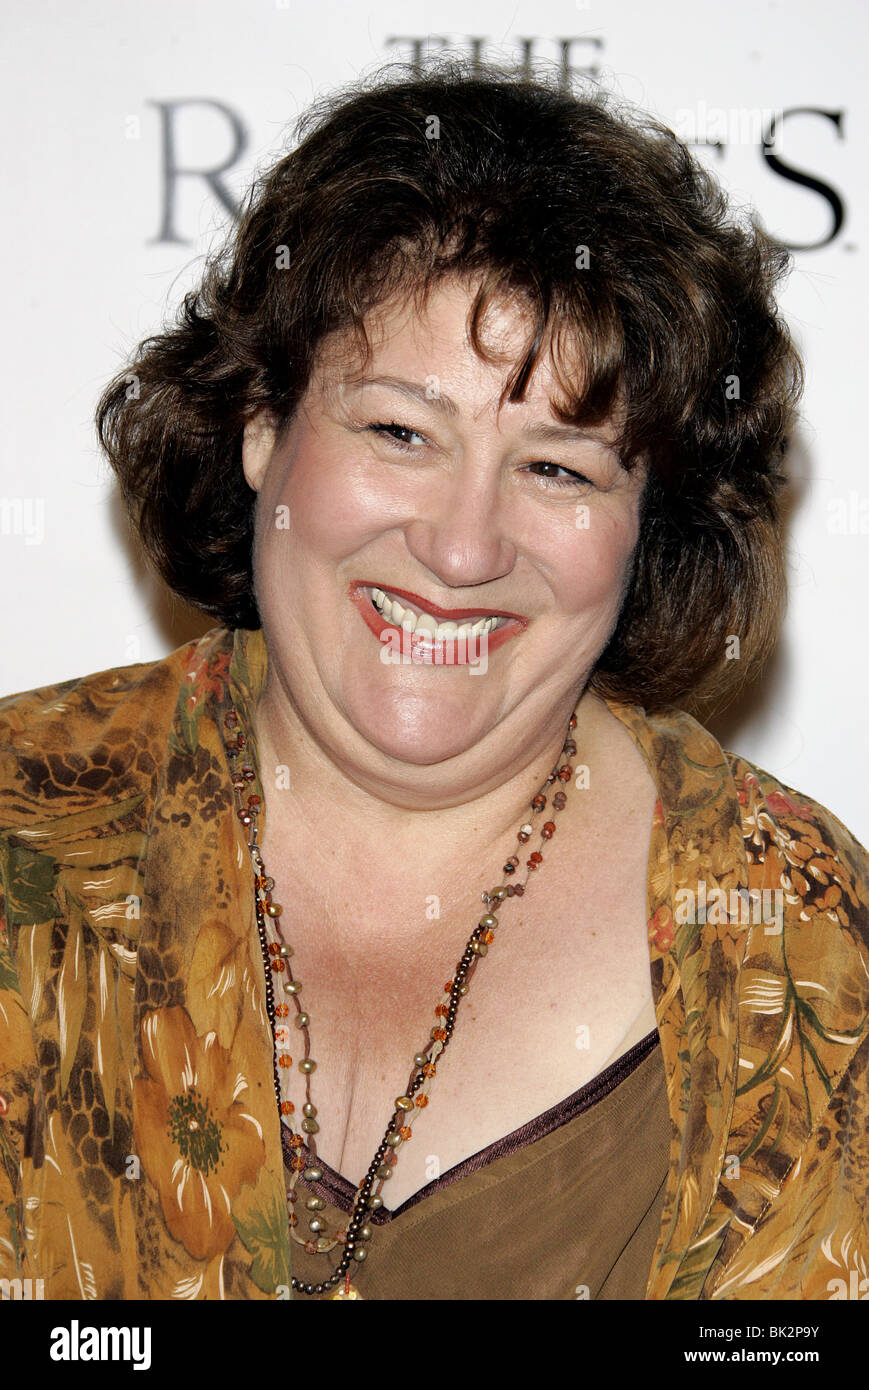 MARGO MARTINDALE THE RICHES TV PREMIERE CENTURY CITY LOS ANGELES USA 10 March 2007 - Stock Image